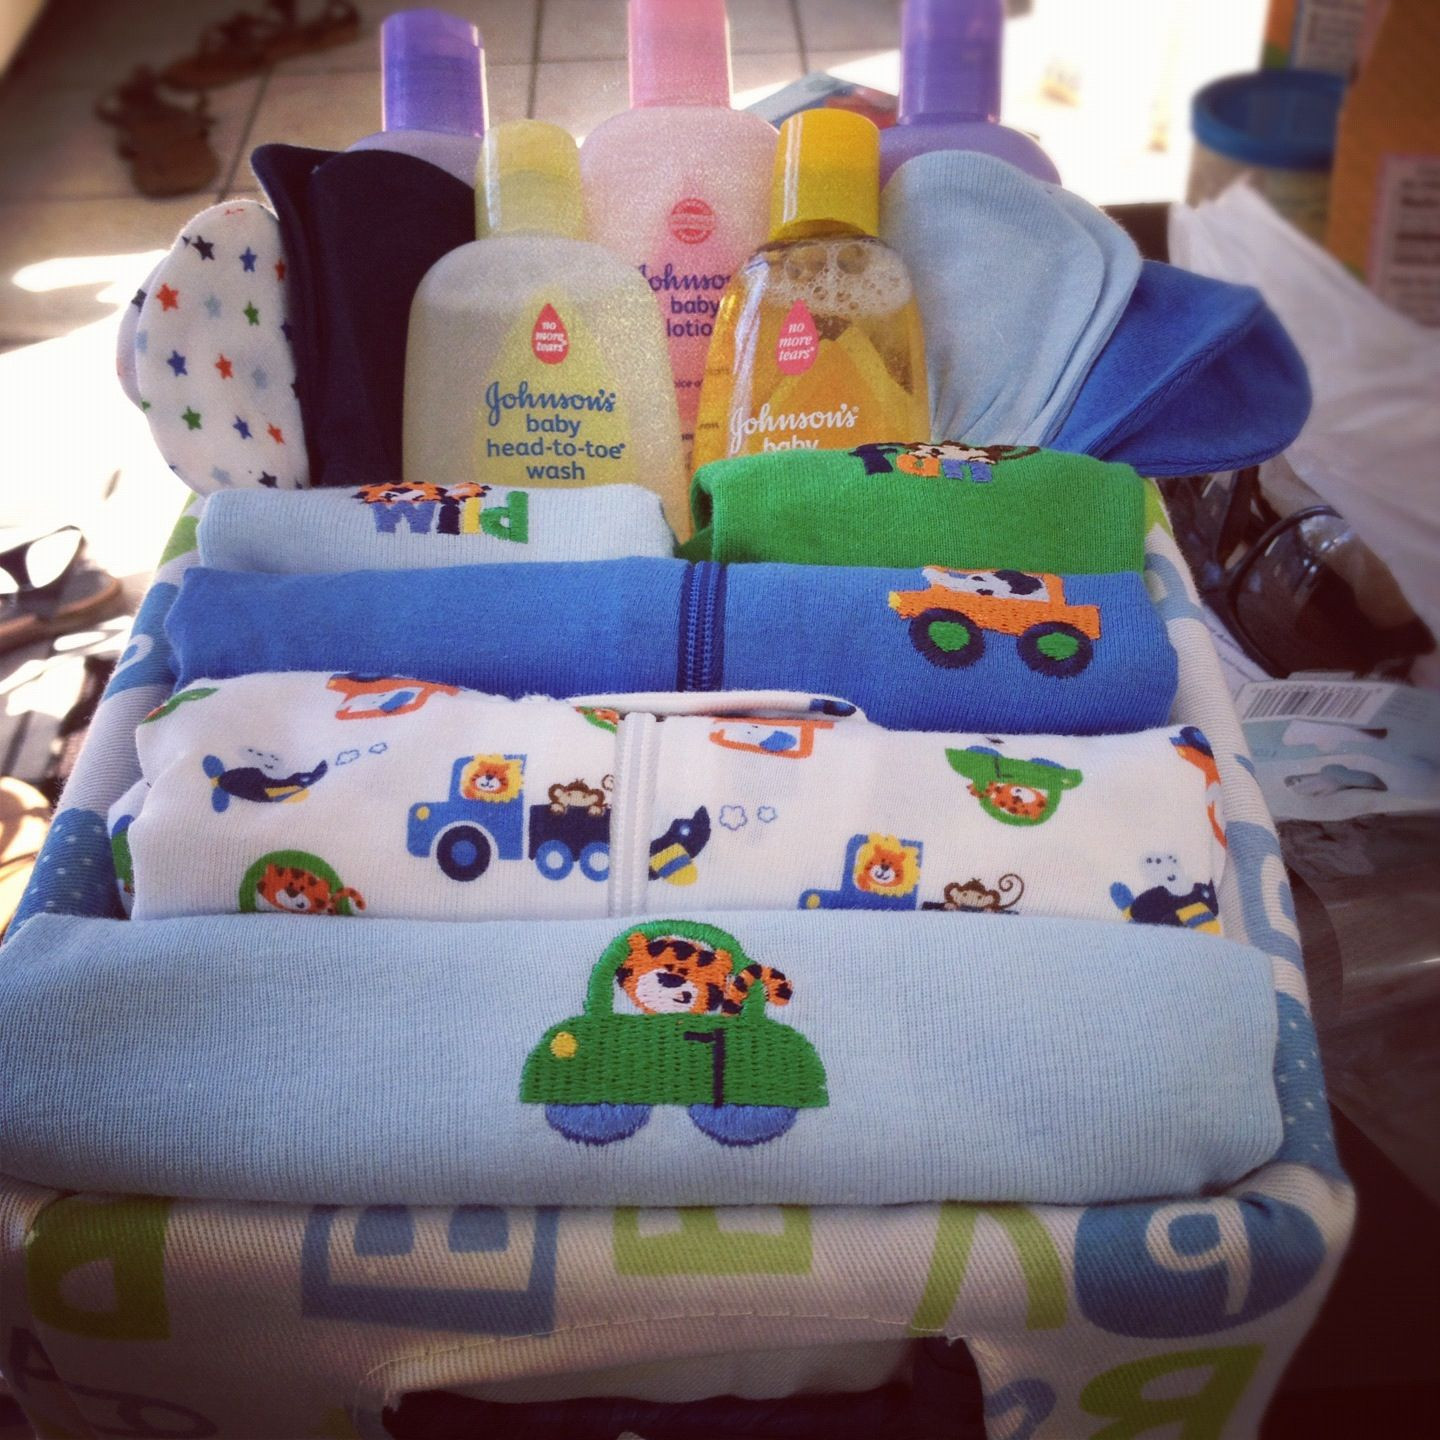 Best ideas about DIY Baby Shower Gift Basket Ideas . Save or Pin Baby shower DIY t basket boy t ideas Now.